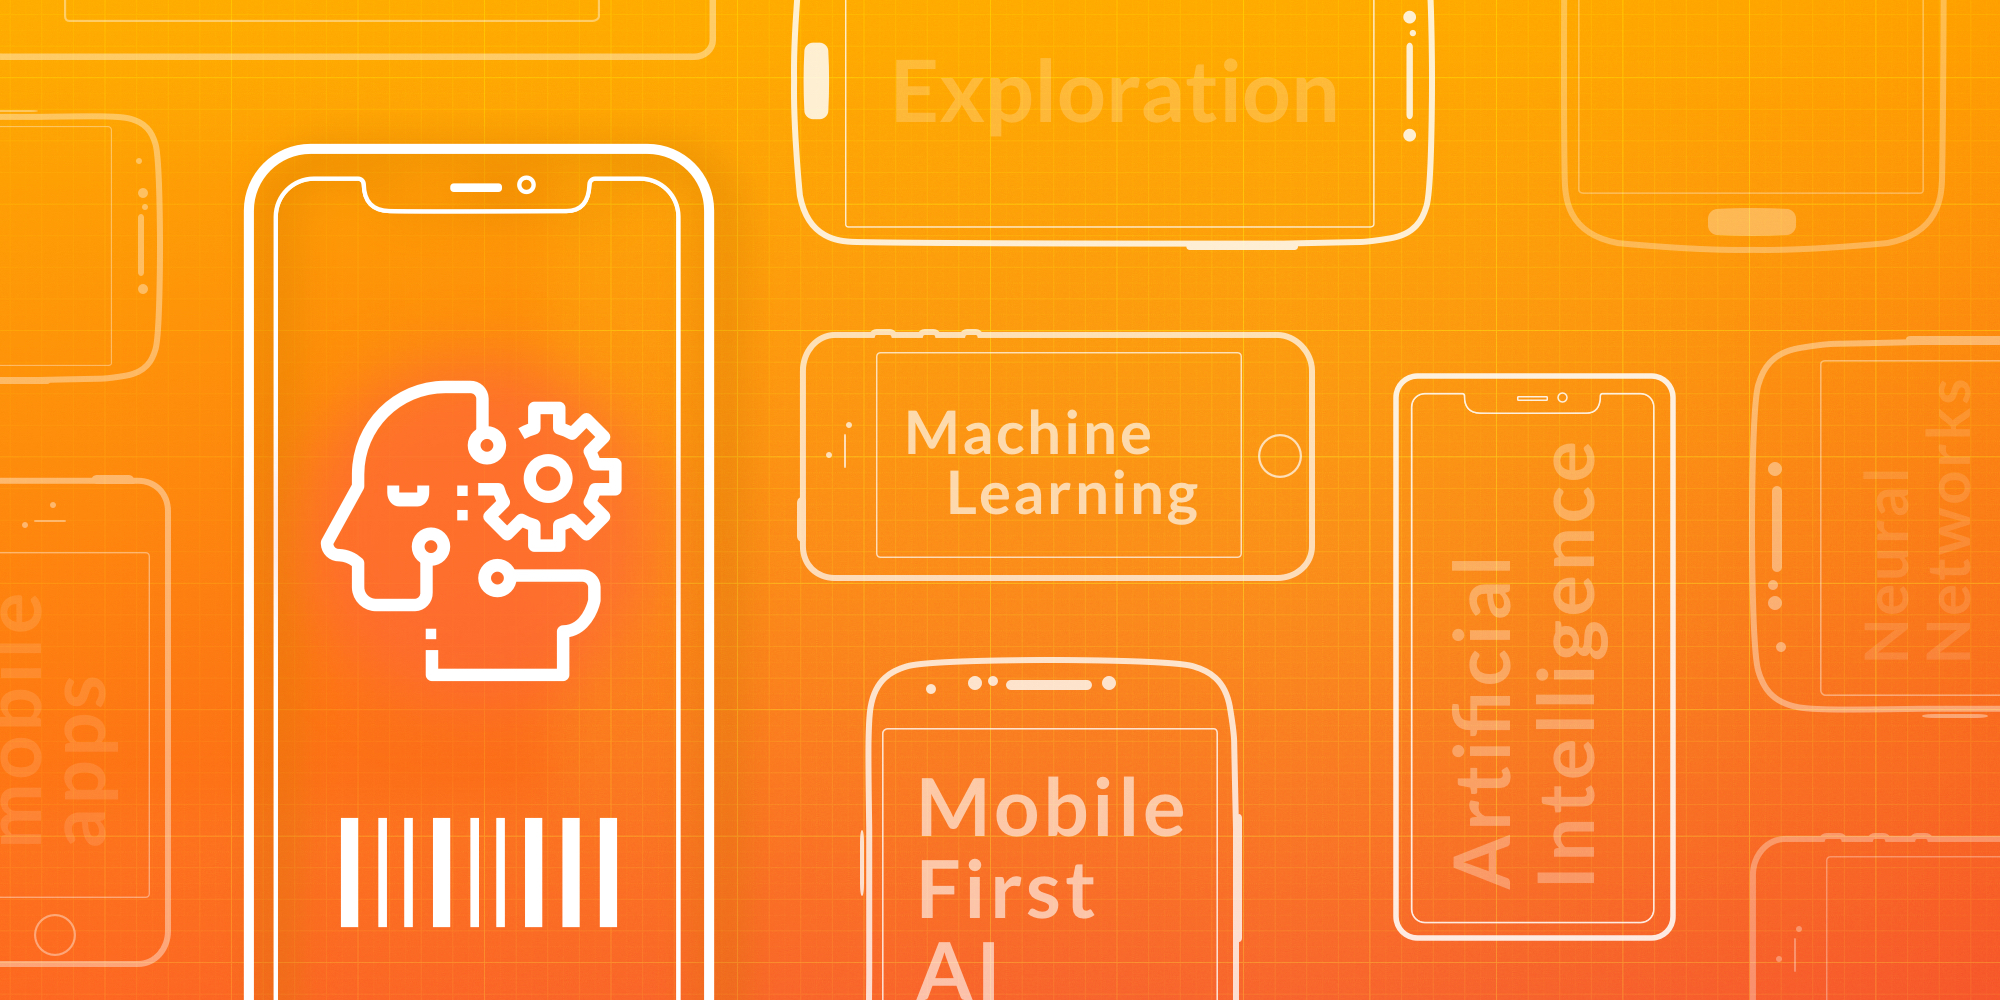 An exploration of mobile first artificial intelligence